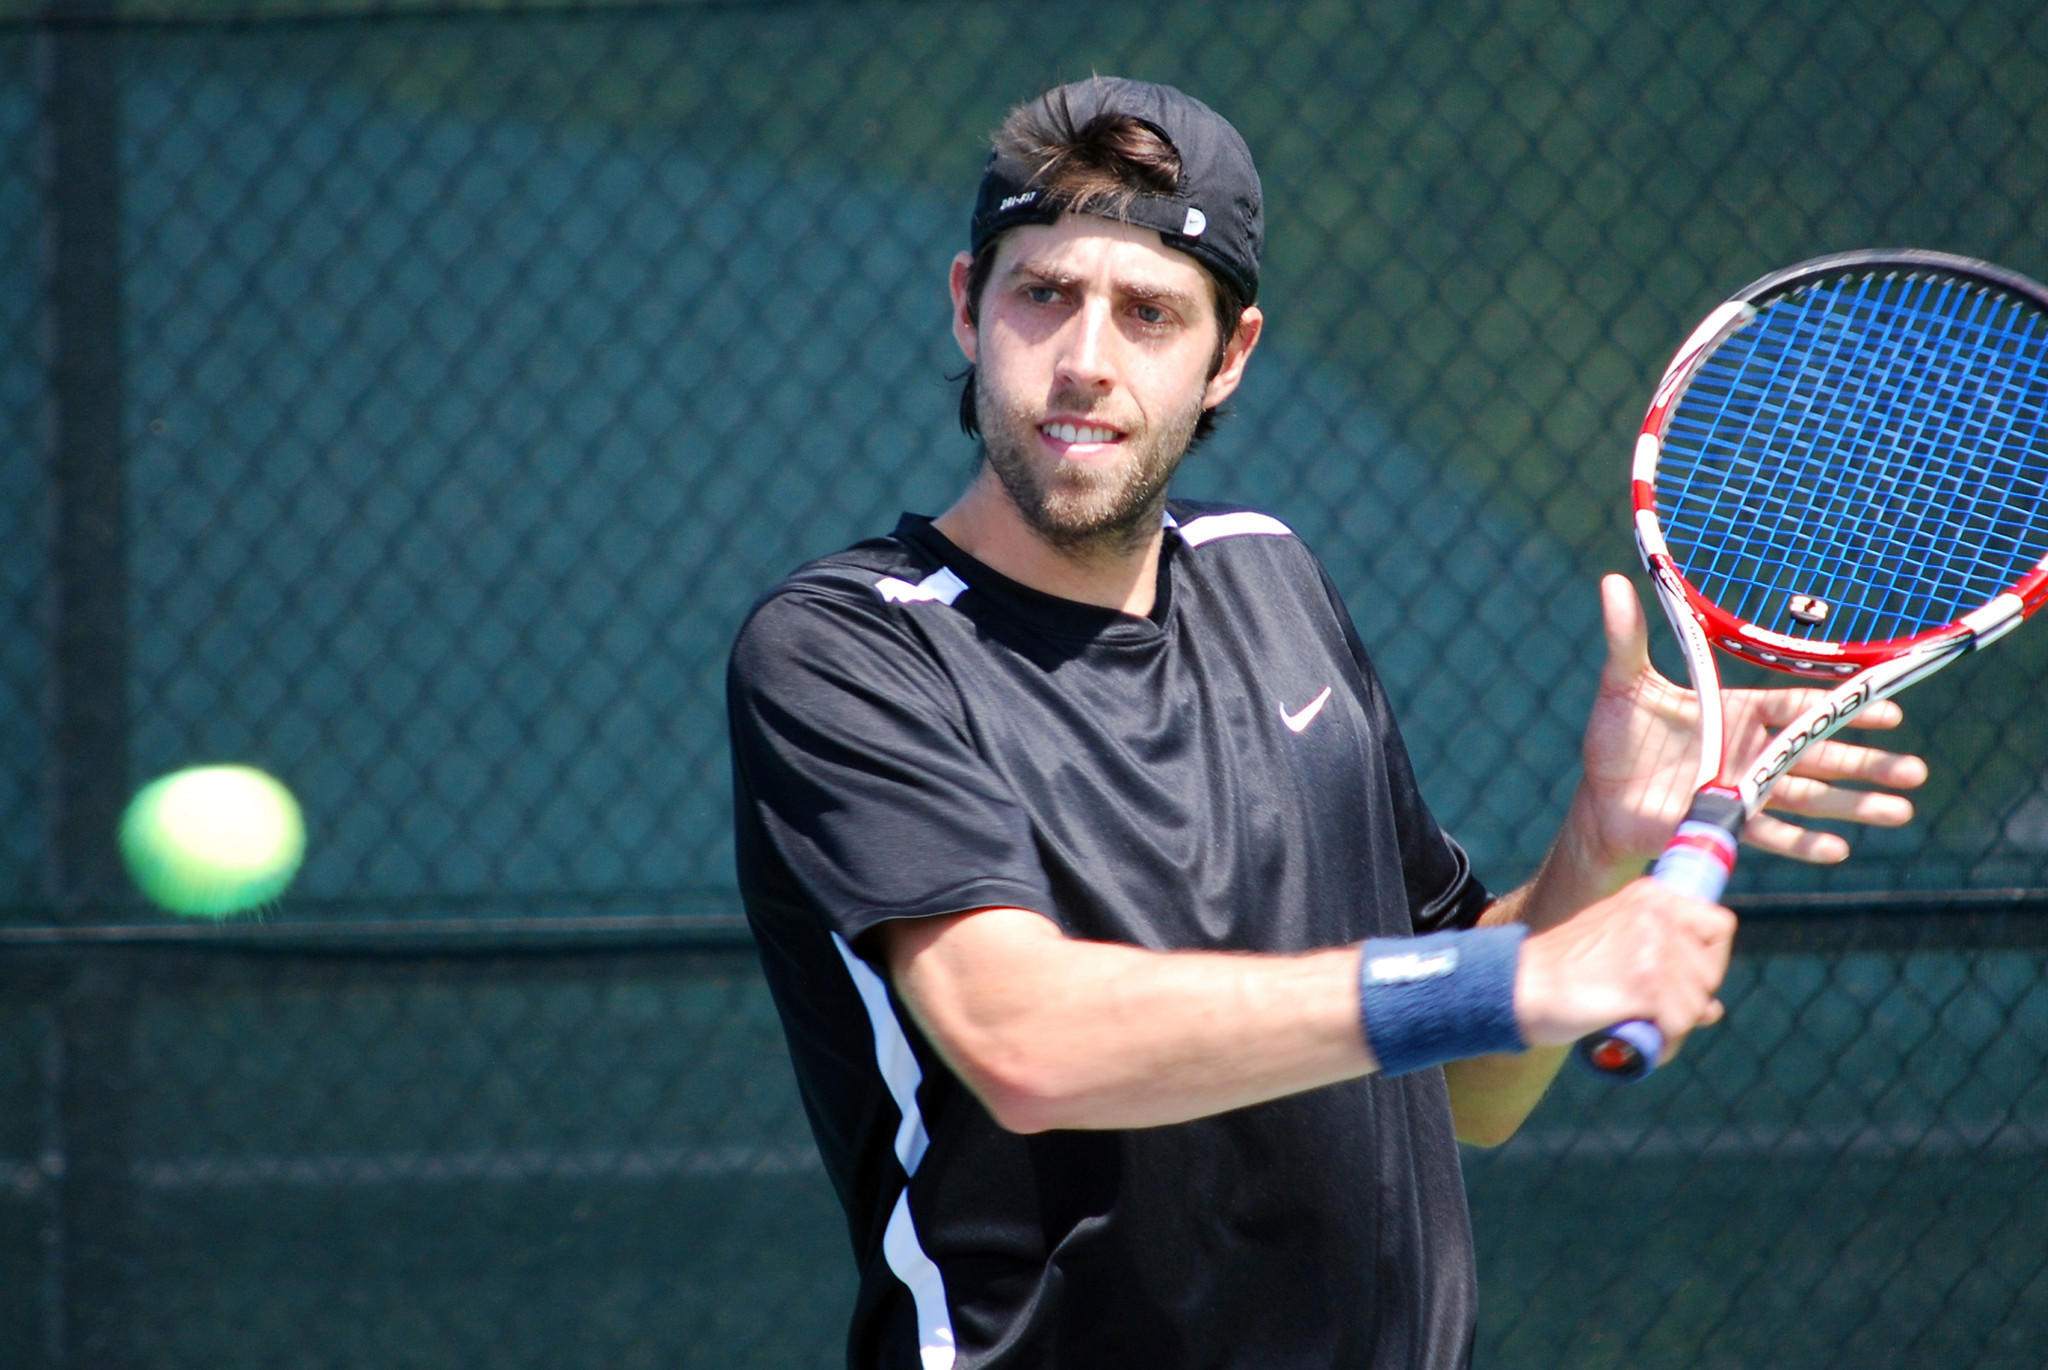 Xander Centenari prepares to hit a slice backhand at College Park Tennis Club during the U.S. Open National Playoffs Mid-Atlantic Sectional Qualifying tournament. Centenari, 24, of Towson, won the men's singles title and a spot in the U.S. Open National Playoffs Championships.